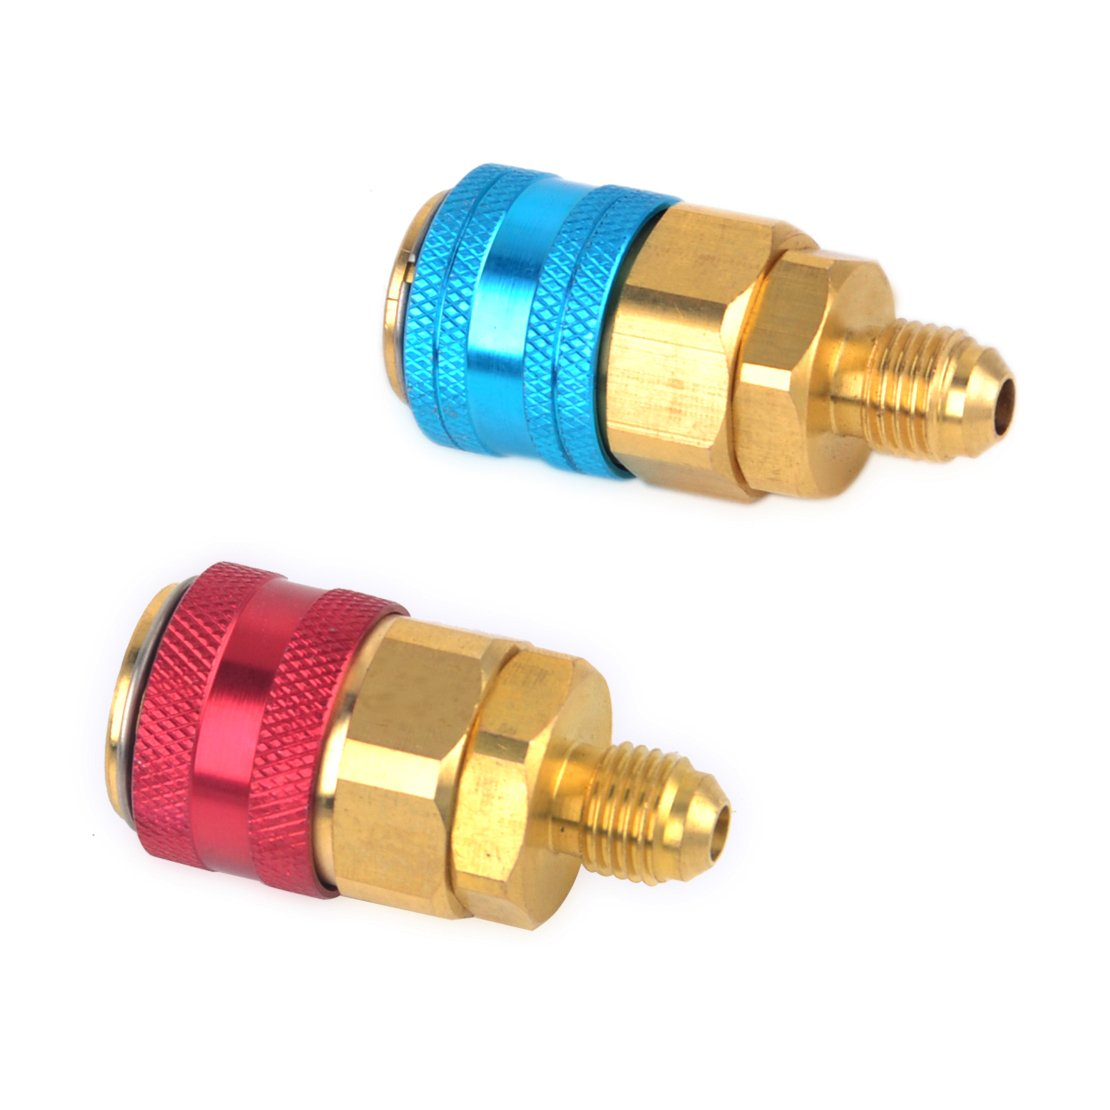 beler 2pcs Universal Car Auto Quick Coupler Connector Adapter Conversion High Low Side AC R134A hermeshine